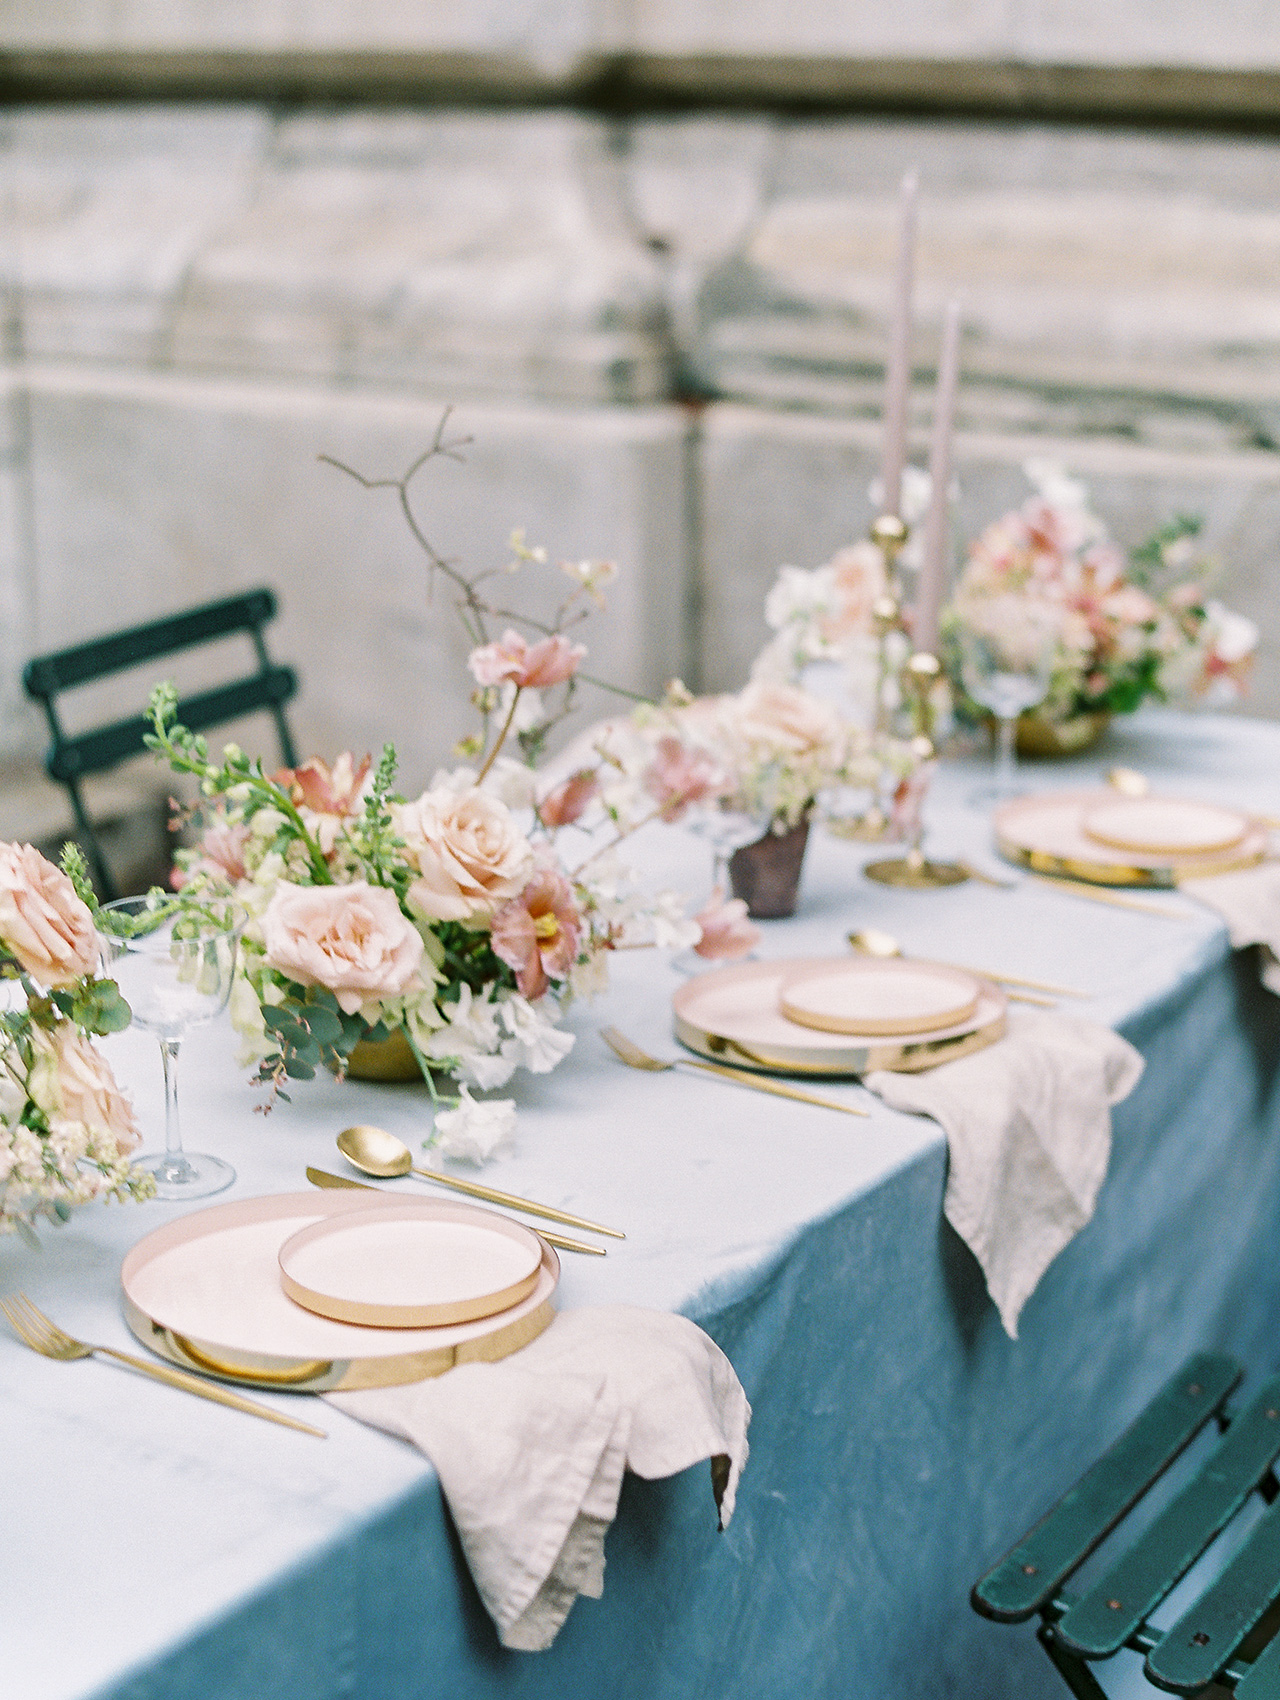 blue table cloth floral centerpiece table setting